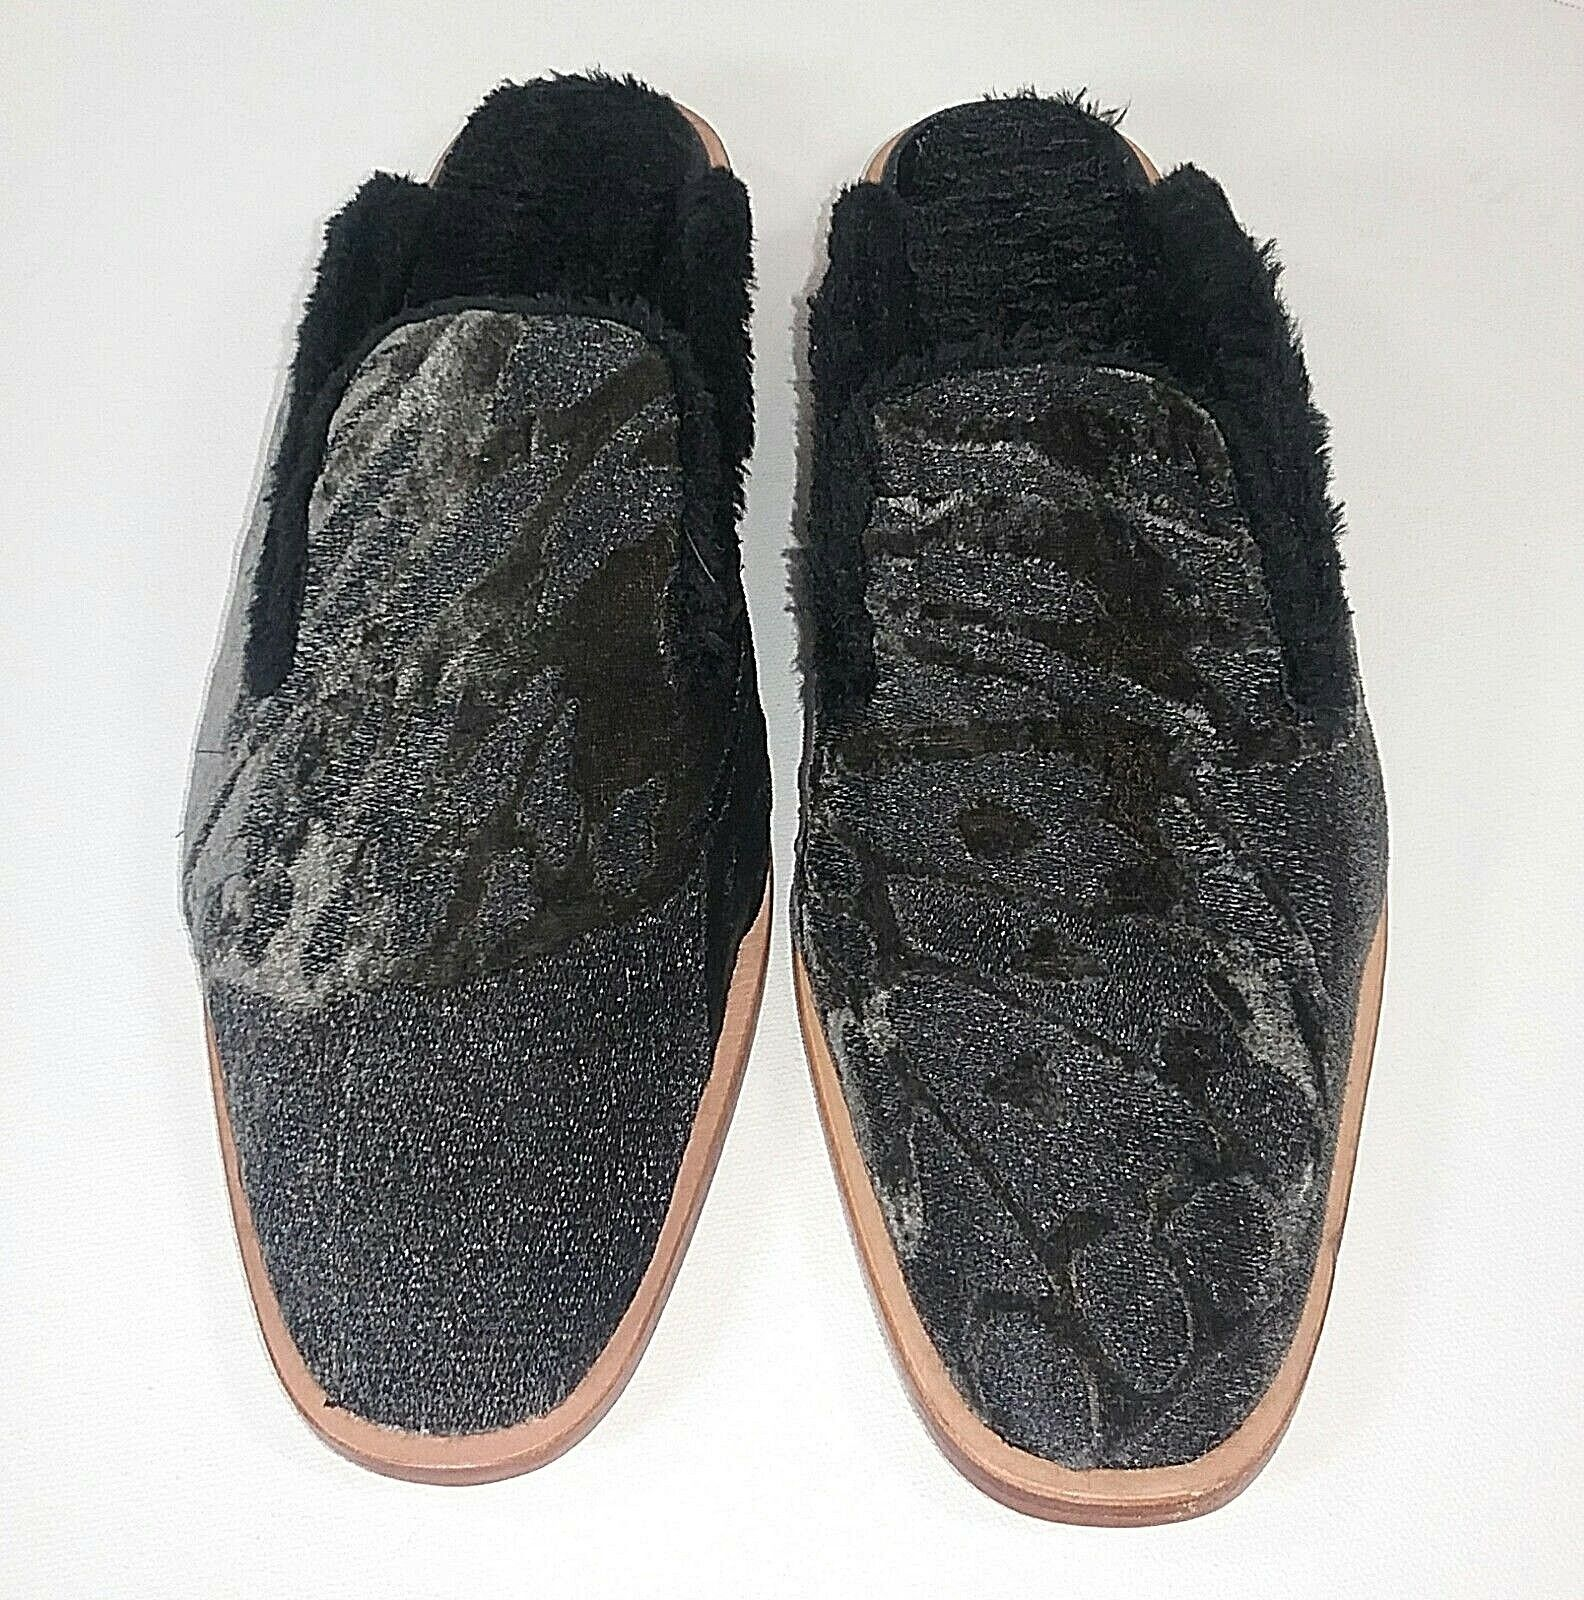 Free People Donna Euro 41 US 11 Dark Grey Butterfly Effect Faux Fur Lined Mules